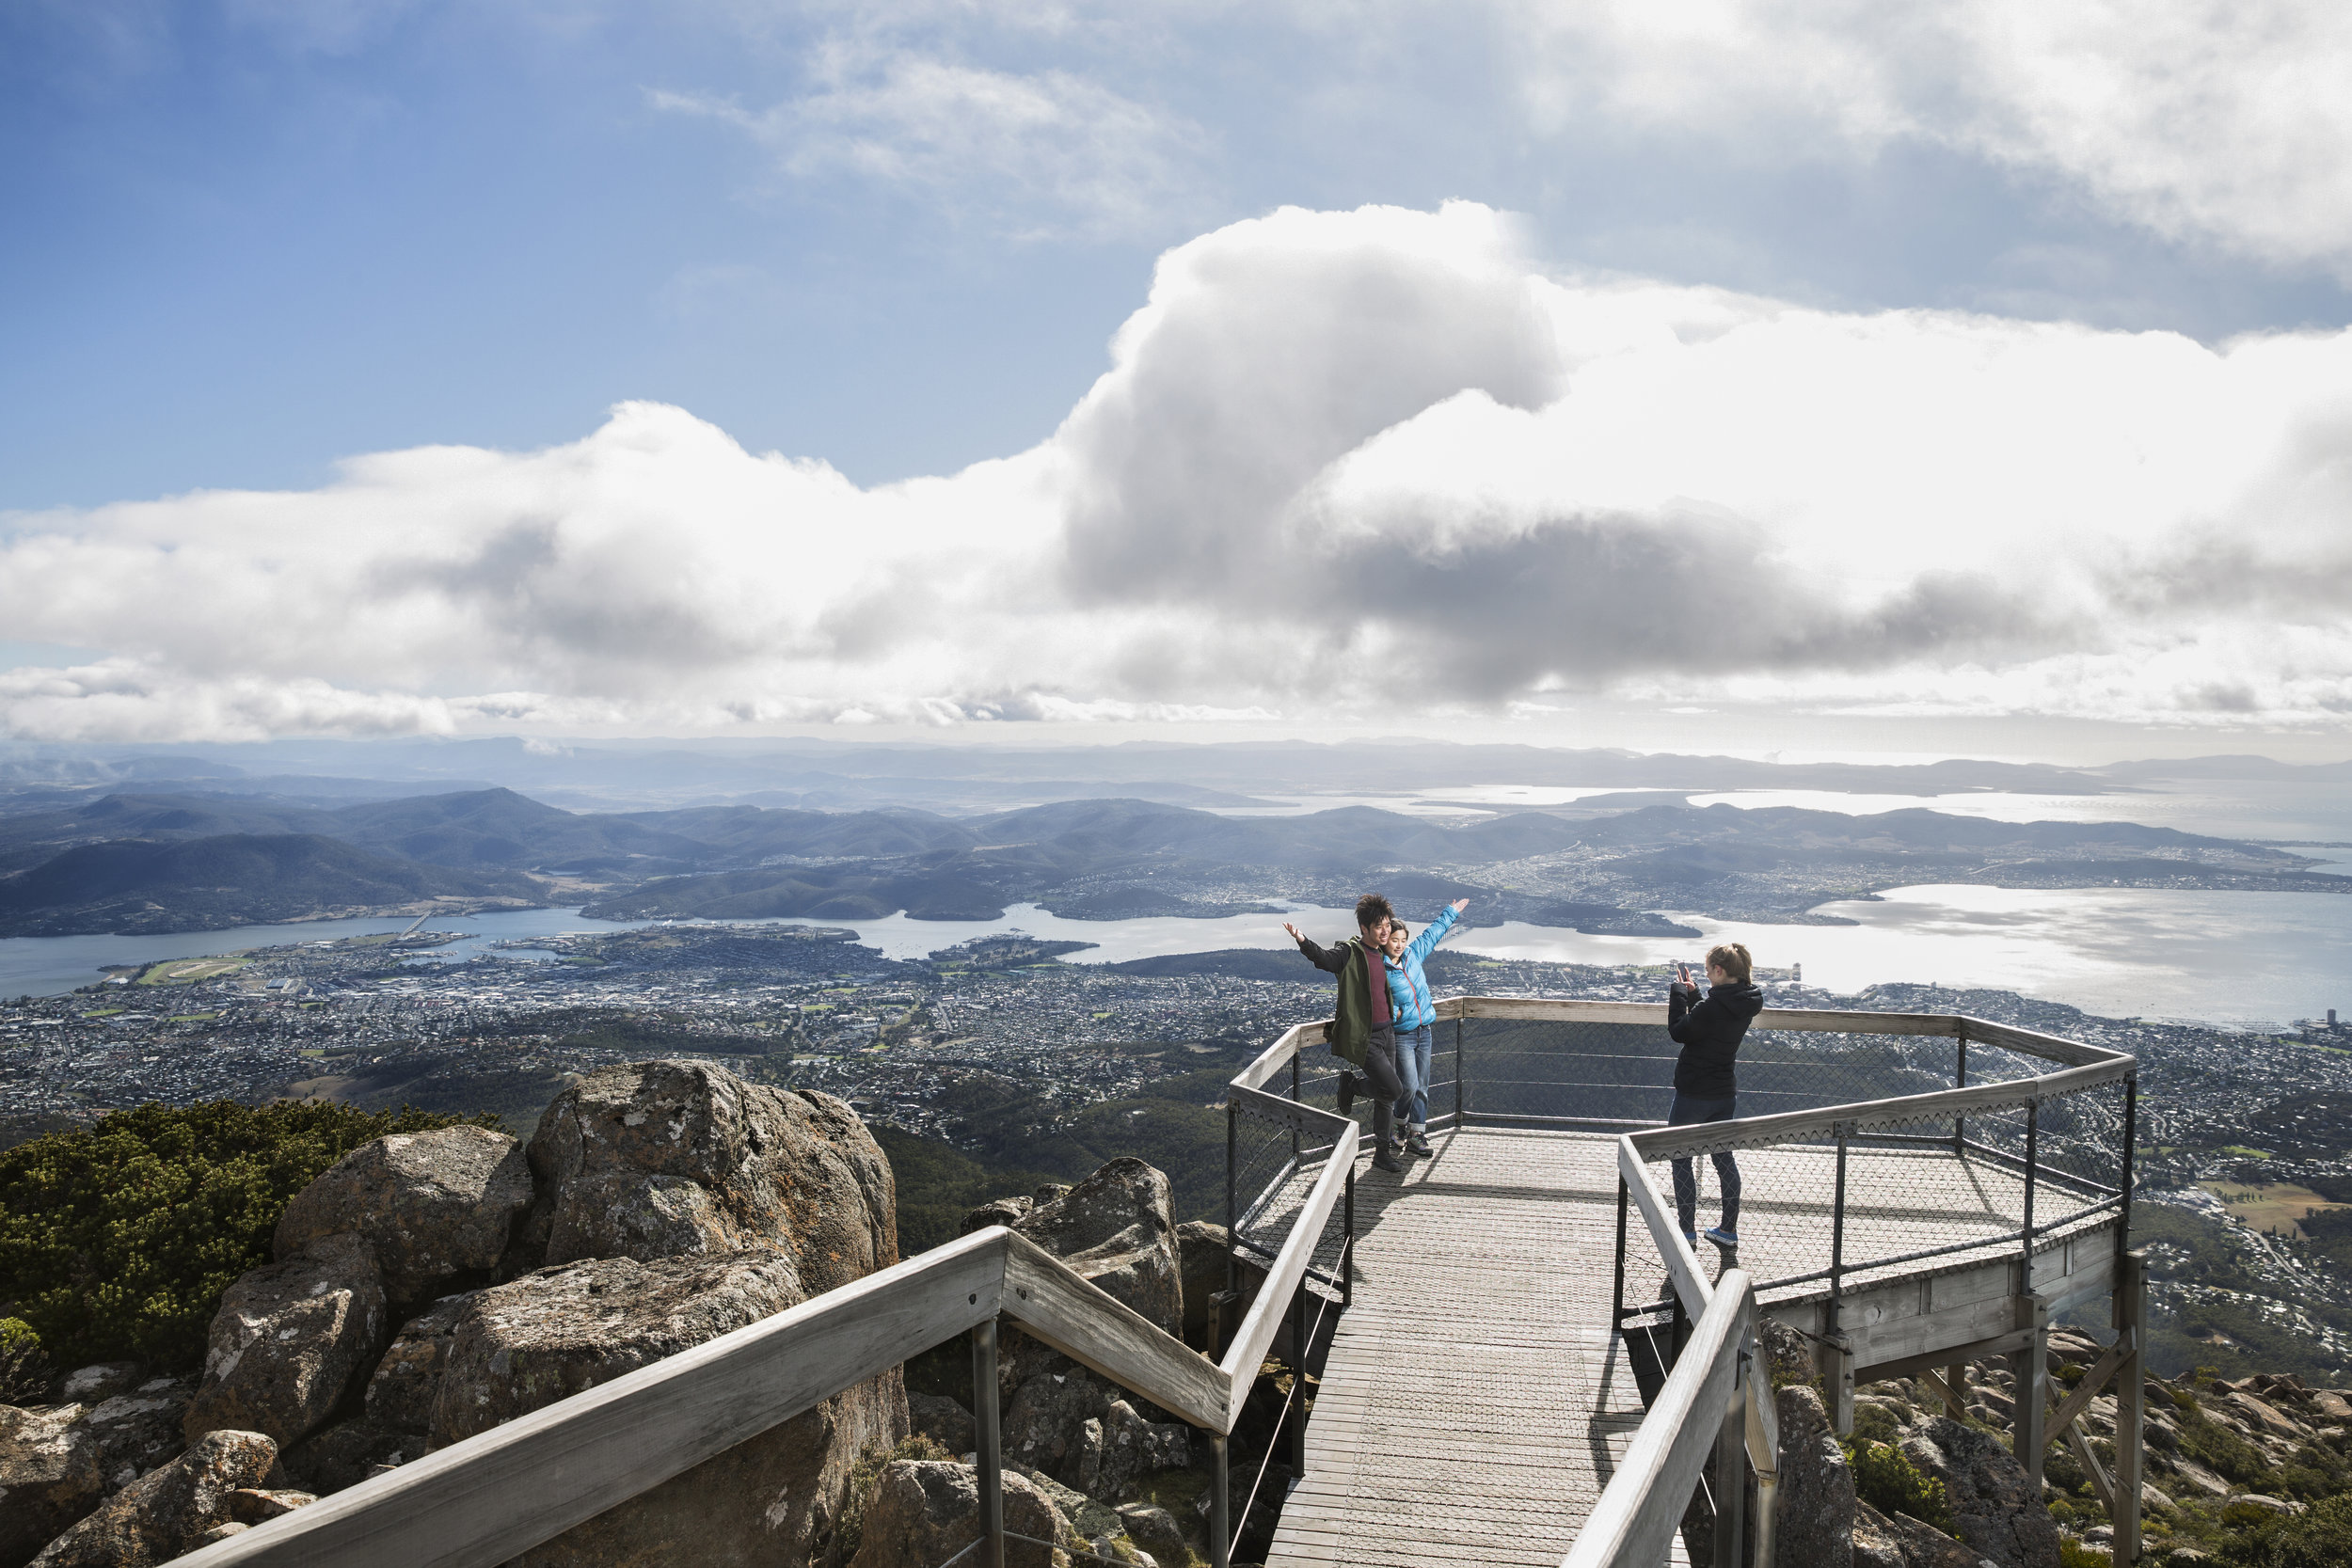 kunanyi/ Mt Wellington. Imposing itself on the Hobart skyline at 1200 meters, this is a must visit when coming to Hobart.